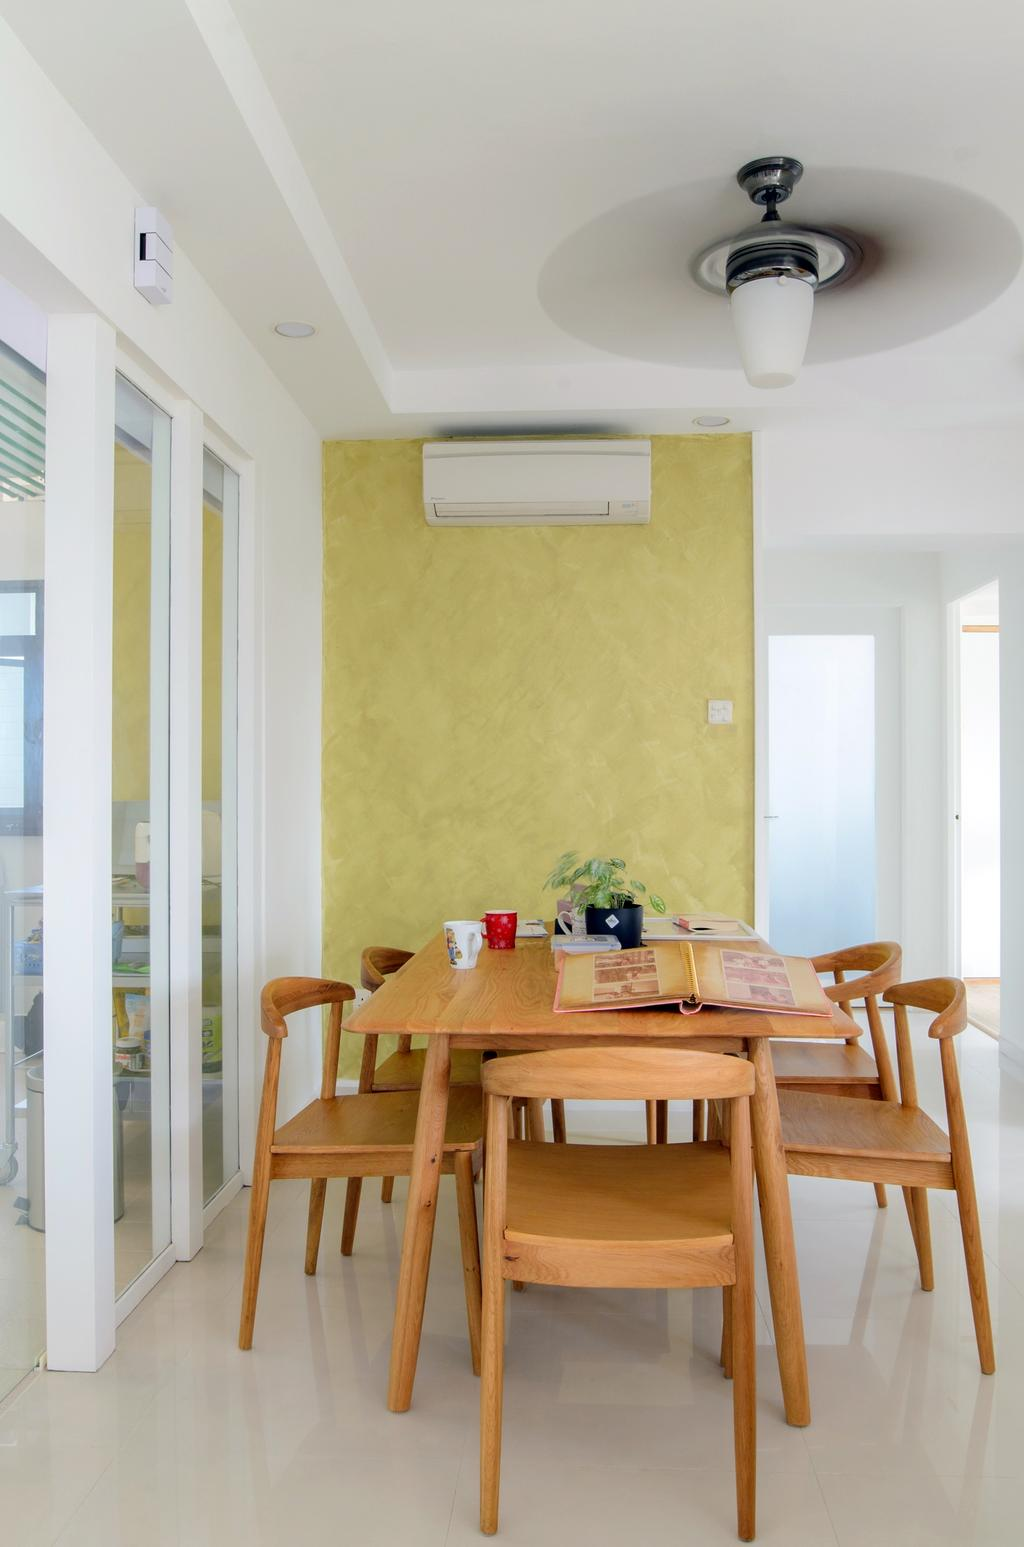 Scandinavian, HDB, Dining Room, Clementi (Block 456), Architect, FOMA Architects, Flora, Jar, Plant, Potted Plant, Pottery, Vase, Dining Table, Furniture, Table, Indoors, Interior Design, Room, Chair, Bar Stool